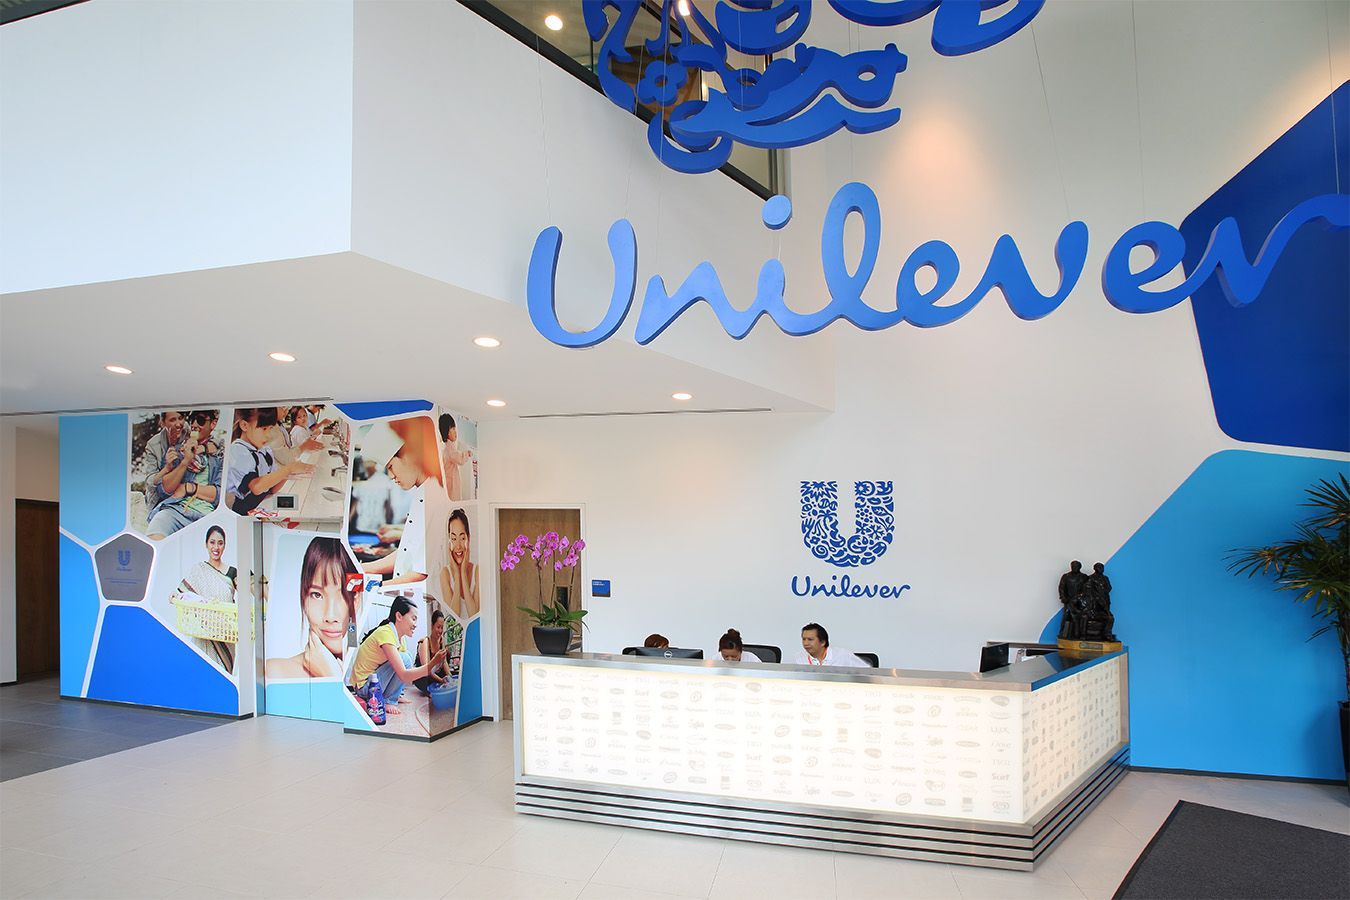 unilever office. Unilever Logo Explained (+ Branding) Office T